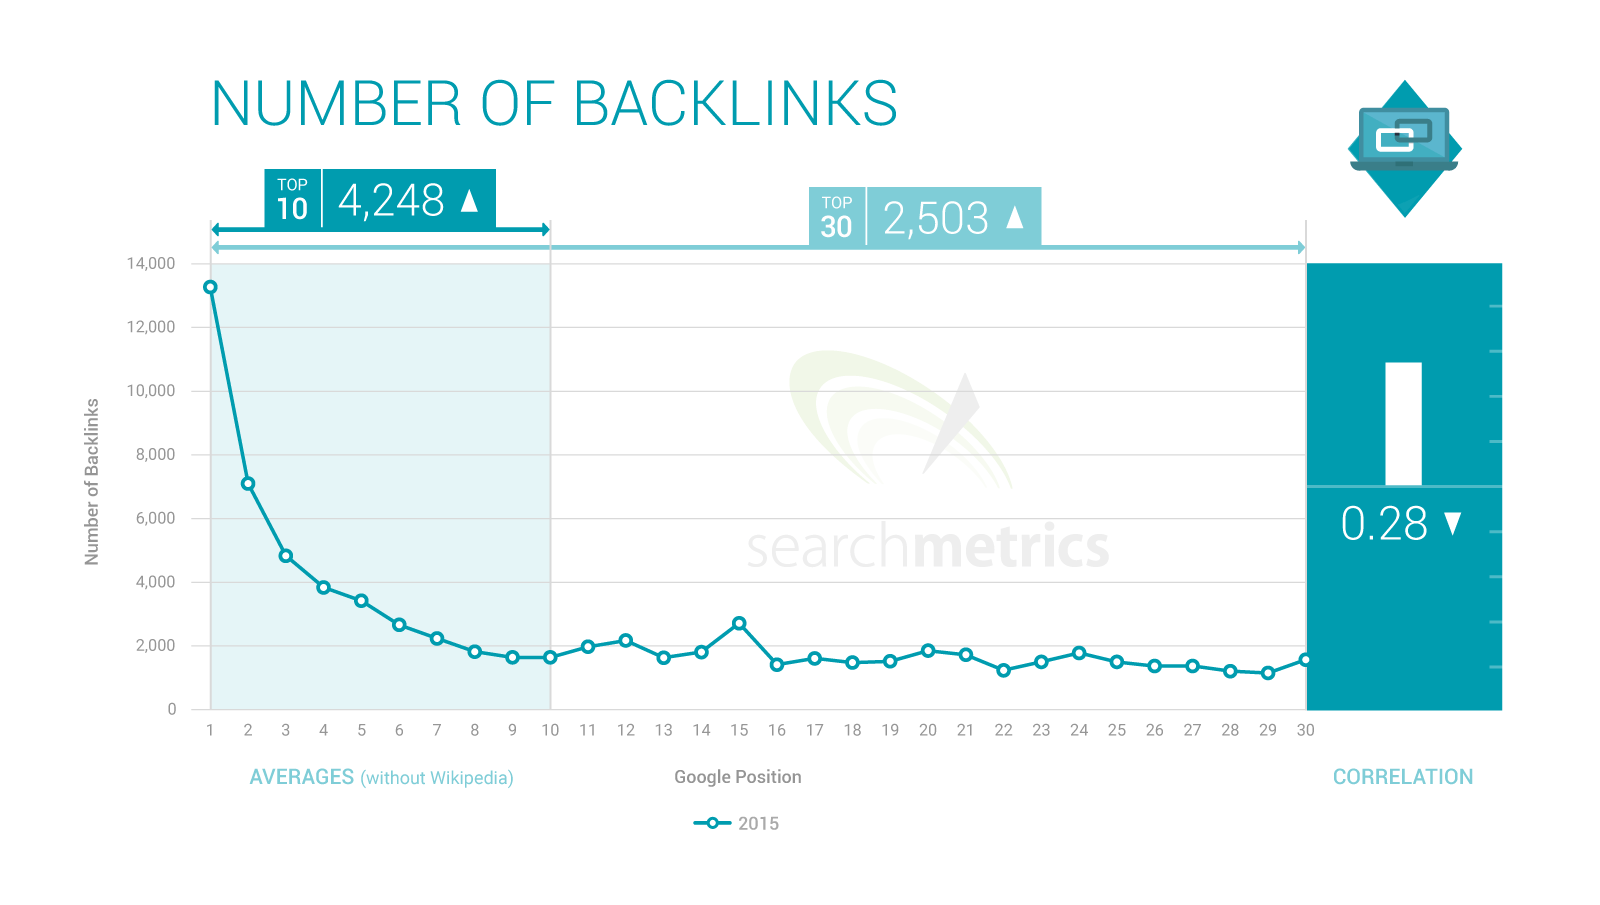 Number of backlinks correlation to ranking